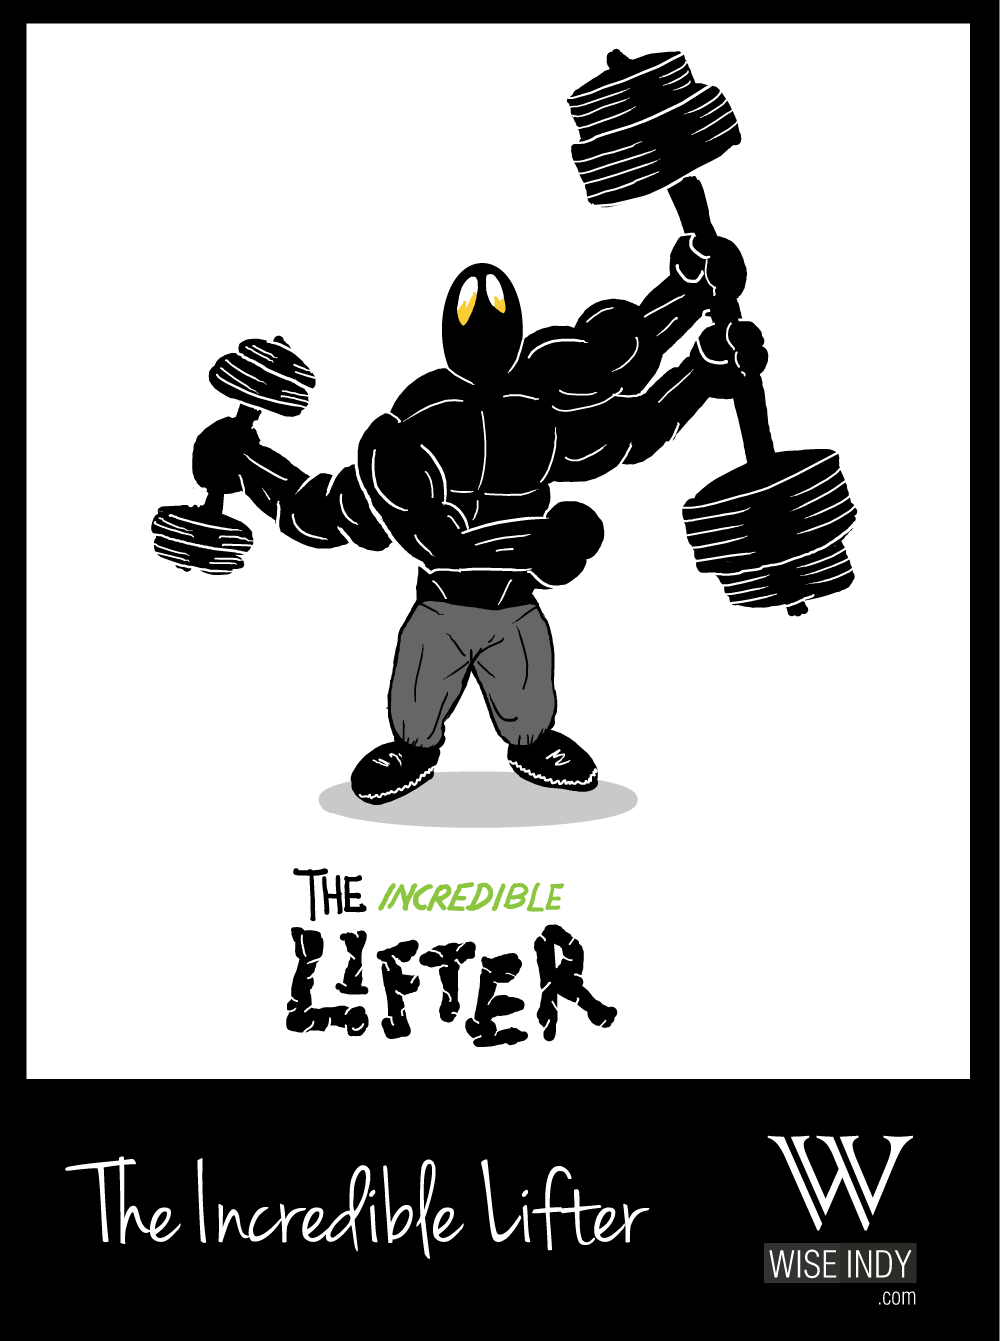 The Incredible Lifter